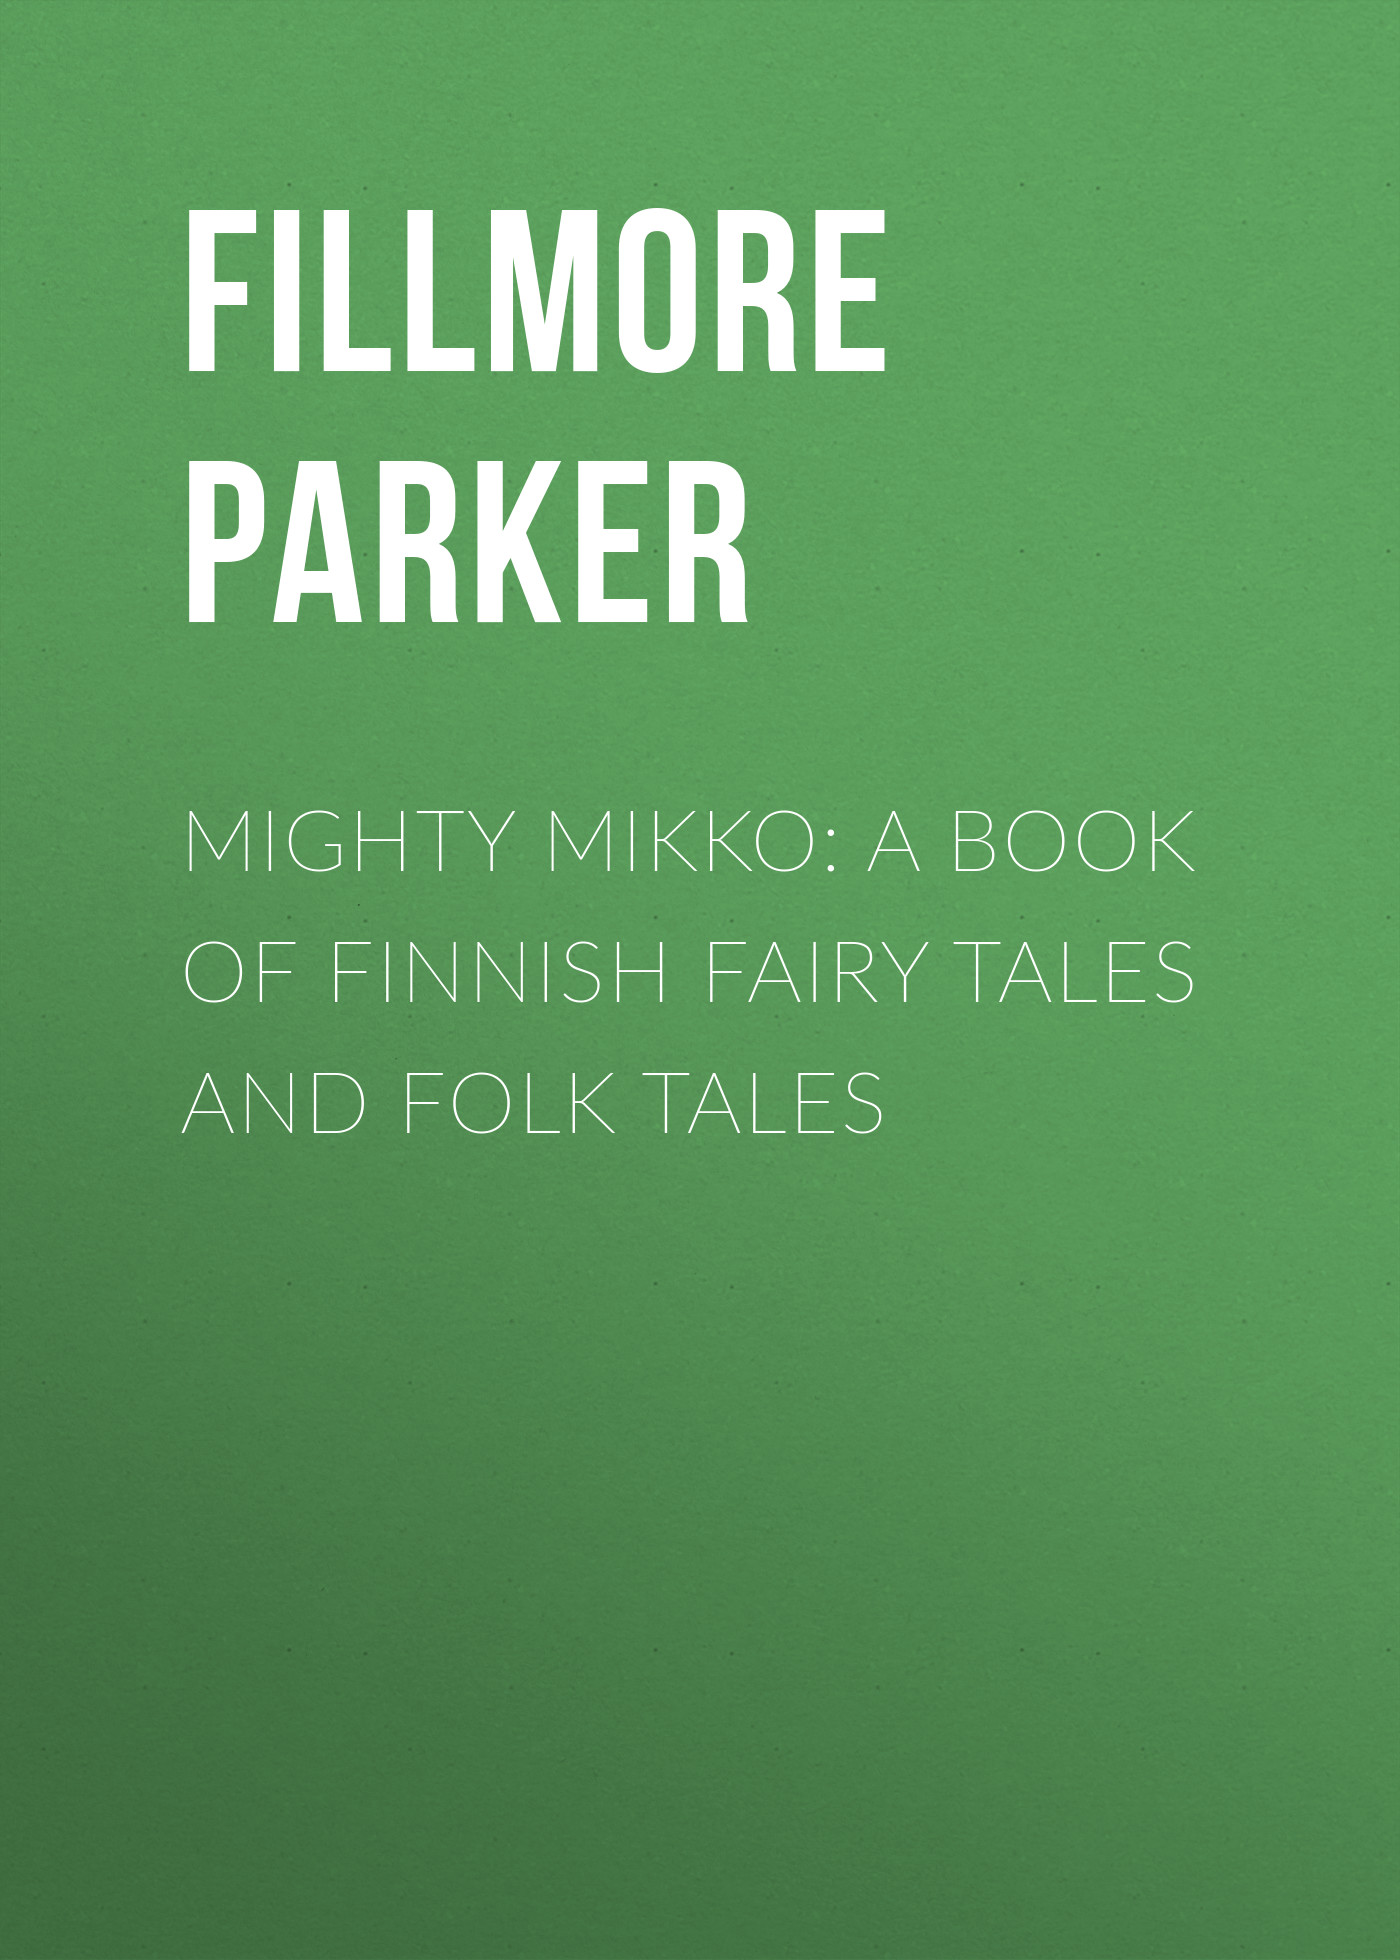 Fillmore Parker Mighty Mikko: A Book of Finnish Fairy Tales and Folk Tales 1pc 320a 320amp hv high voltage brushed esc electronic speed controller for rc model car boat hsp traxxas arrma himoto td 005